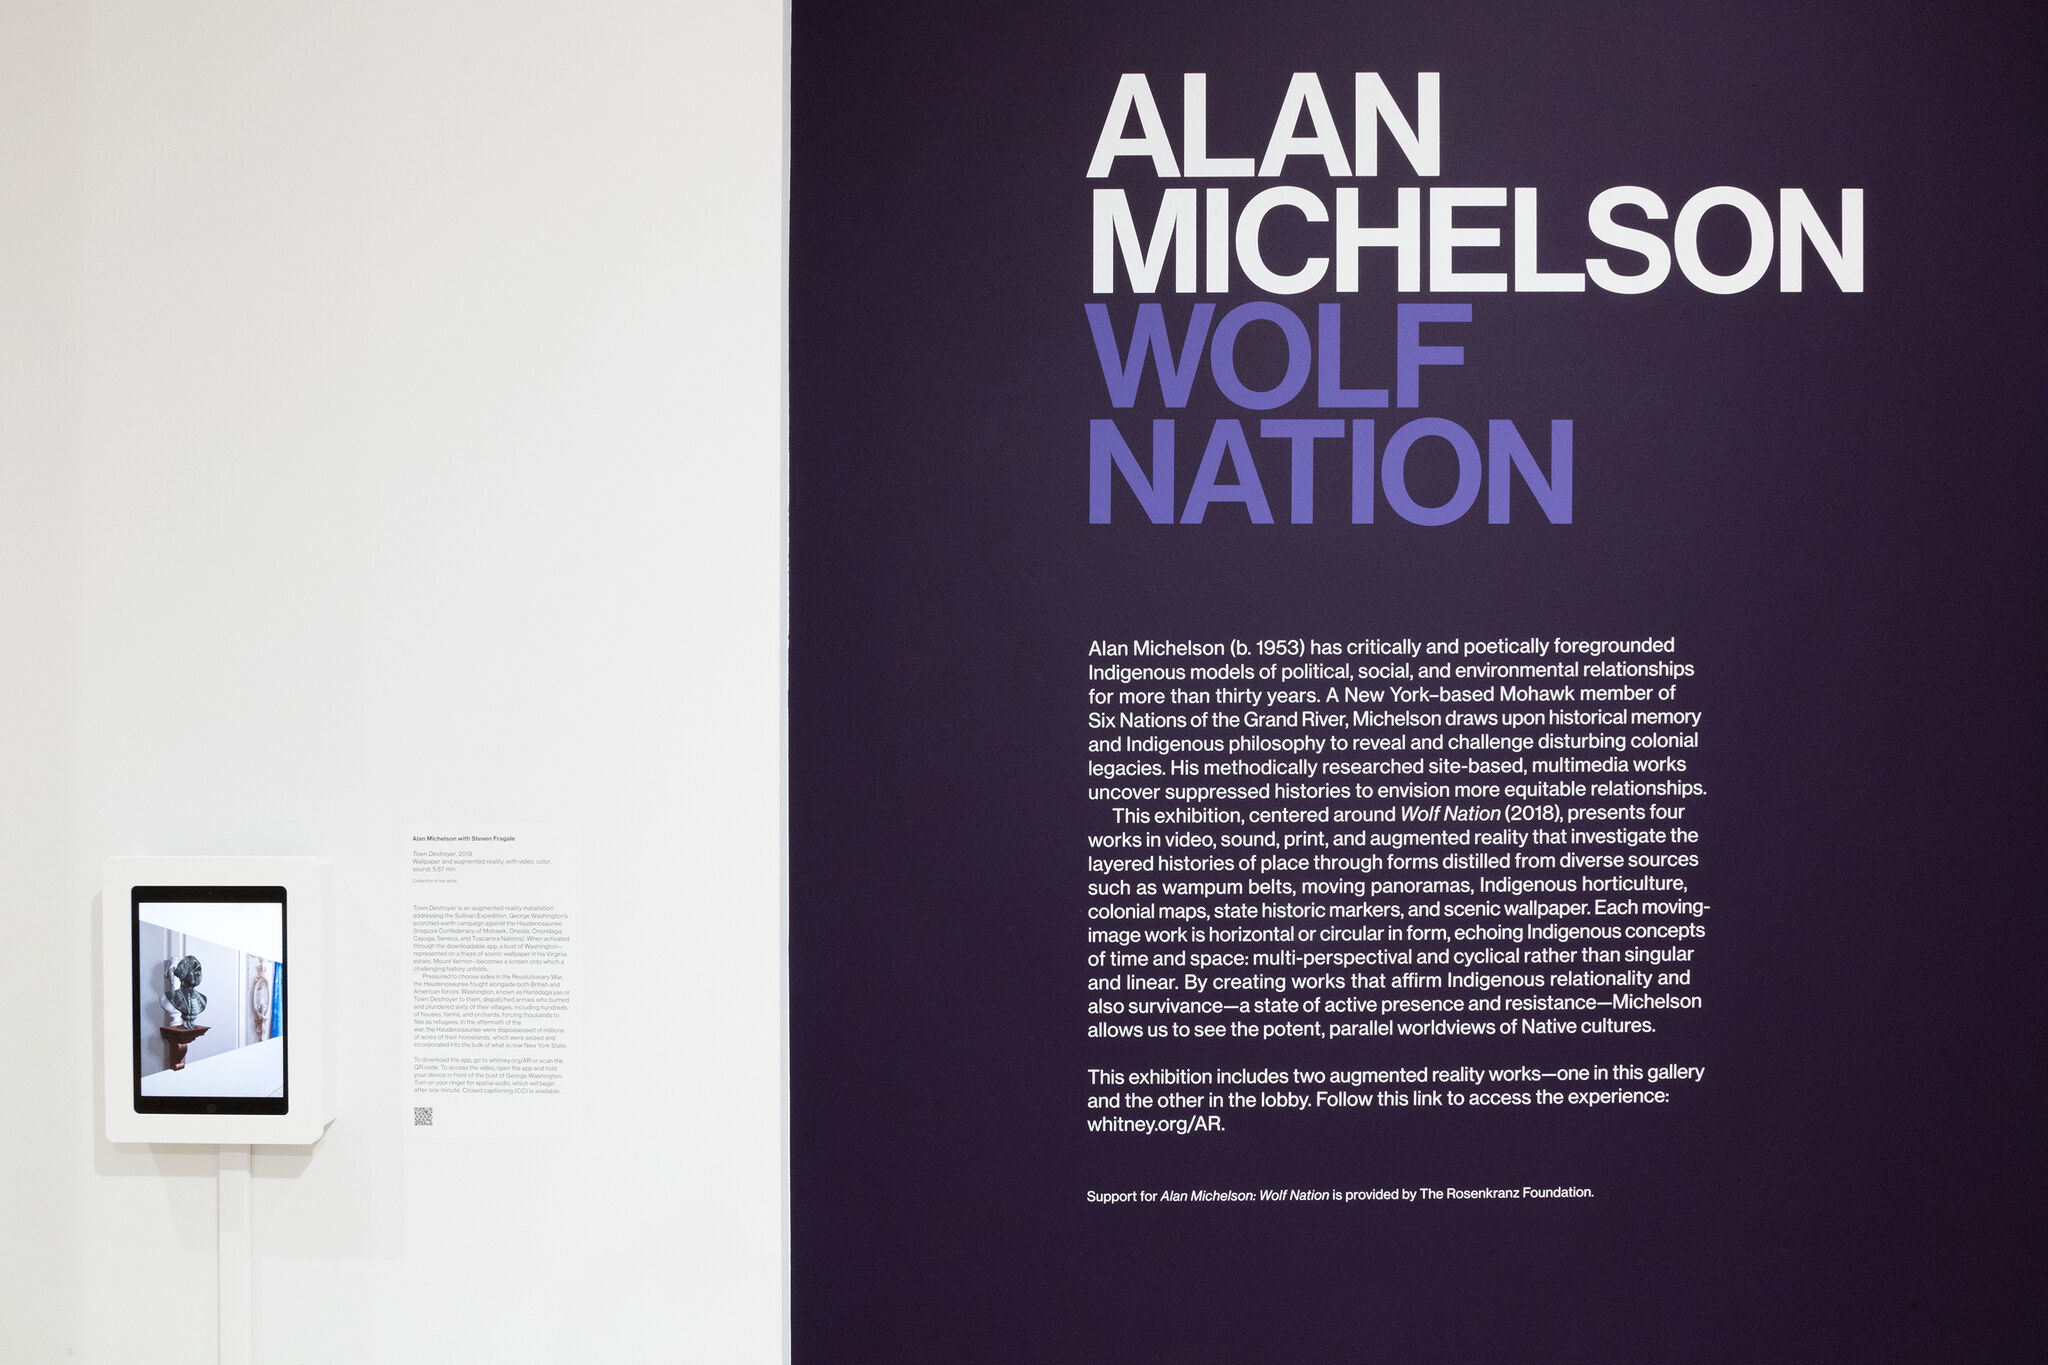 Wall text for the exhibition, Alan Michelson: Wolf Nation, along with a tablet on display.